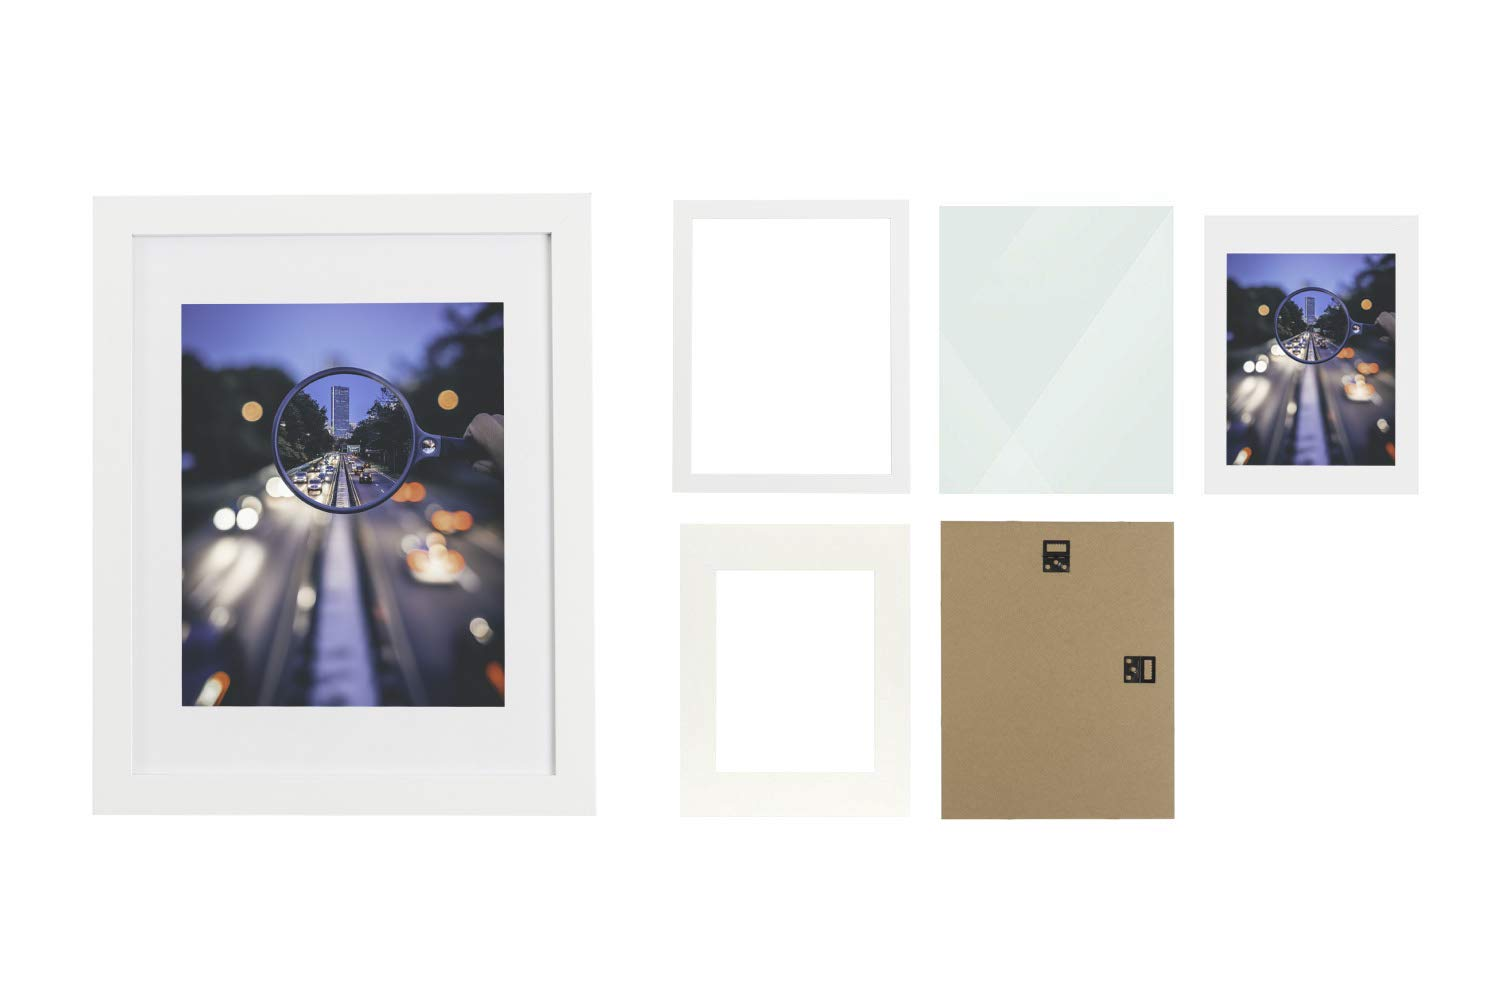 11 by 14 or 8 by 10 Matted Real Wood Frame Wall Mounting Ready 11x14 Photo Frame 8x10 Picture Frame with Mat or 11x14 Picture Frame Without Mat iDecorlife Premium 11x14 White Picture Frame 1PC